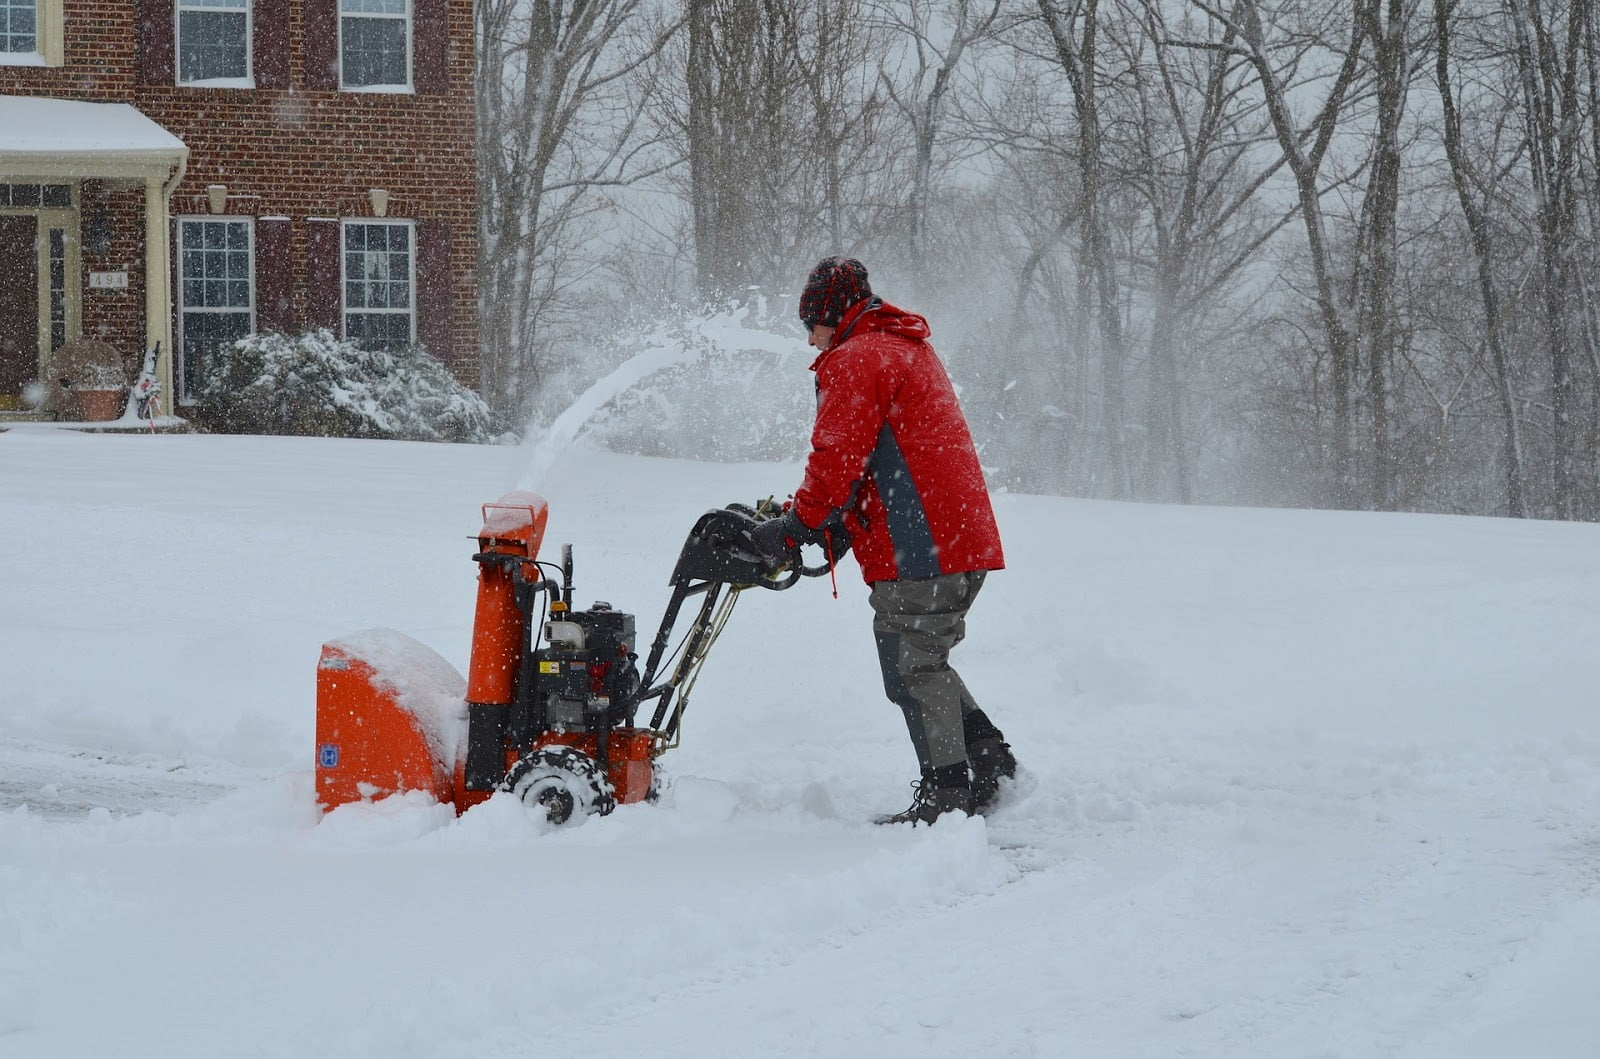 Earth Development is the best snow removal service in Akron, Cuyahoga Falls, Norton, Barberton, and beyond and we think it's because we follow four important principles: